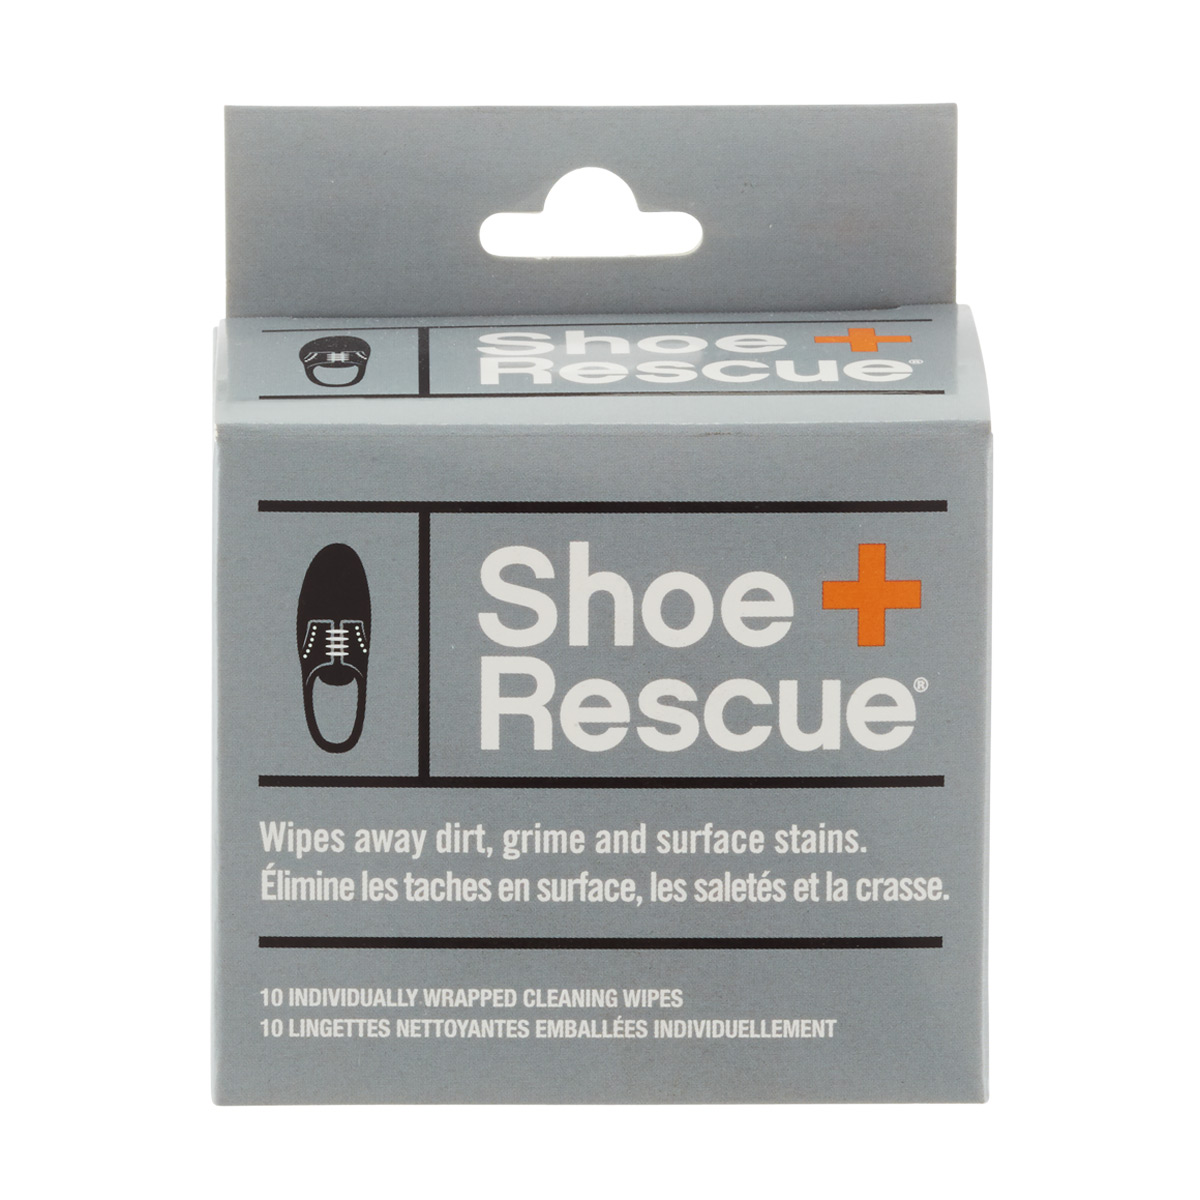 ShoeRescue